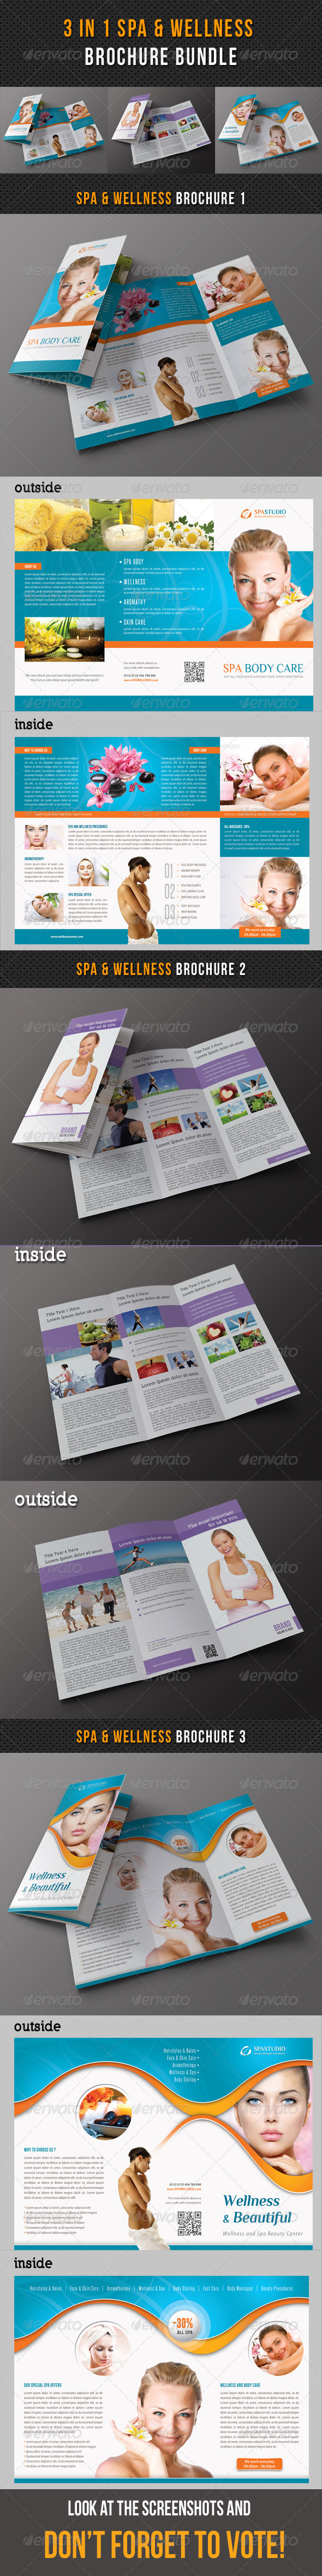 GraphicRiver 3 in 1 Spa Wellness Brochure Bundle 02 8328384